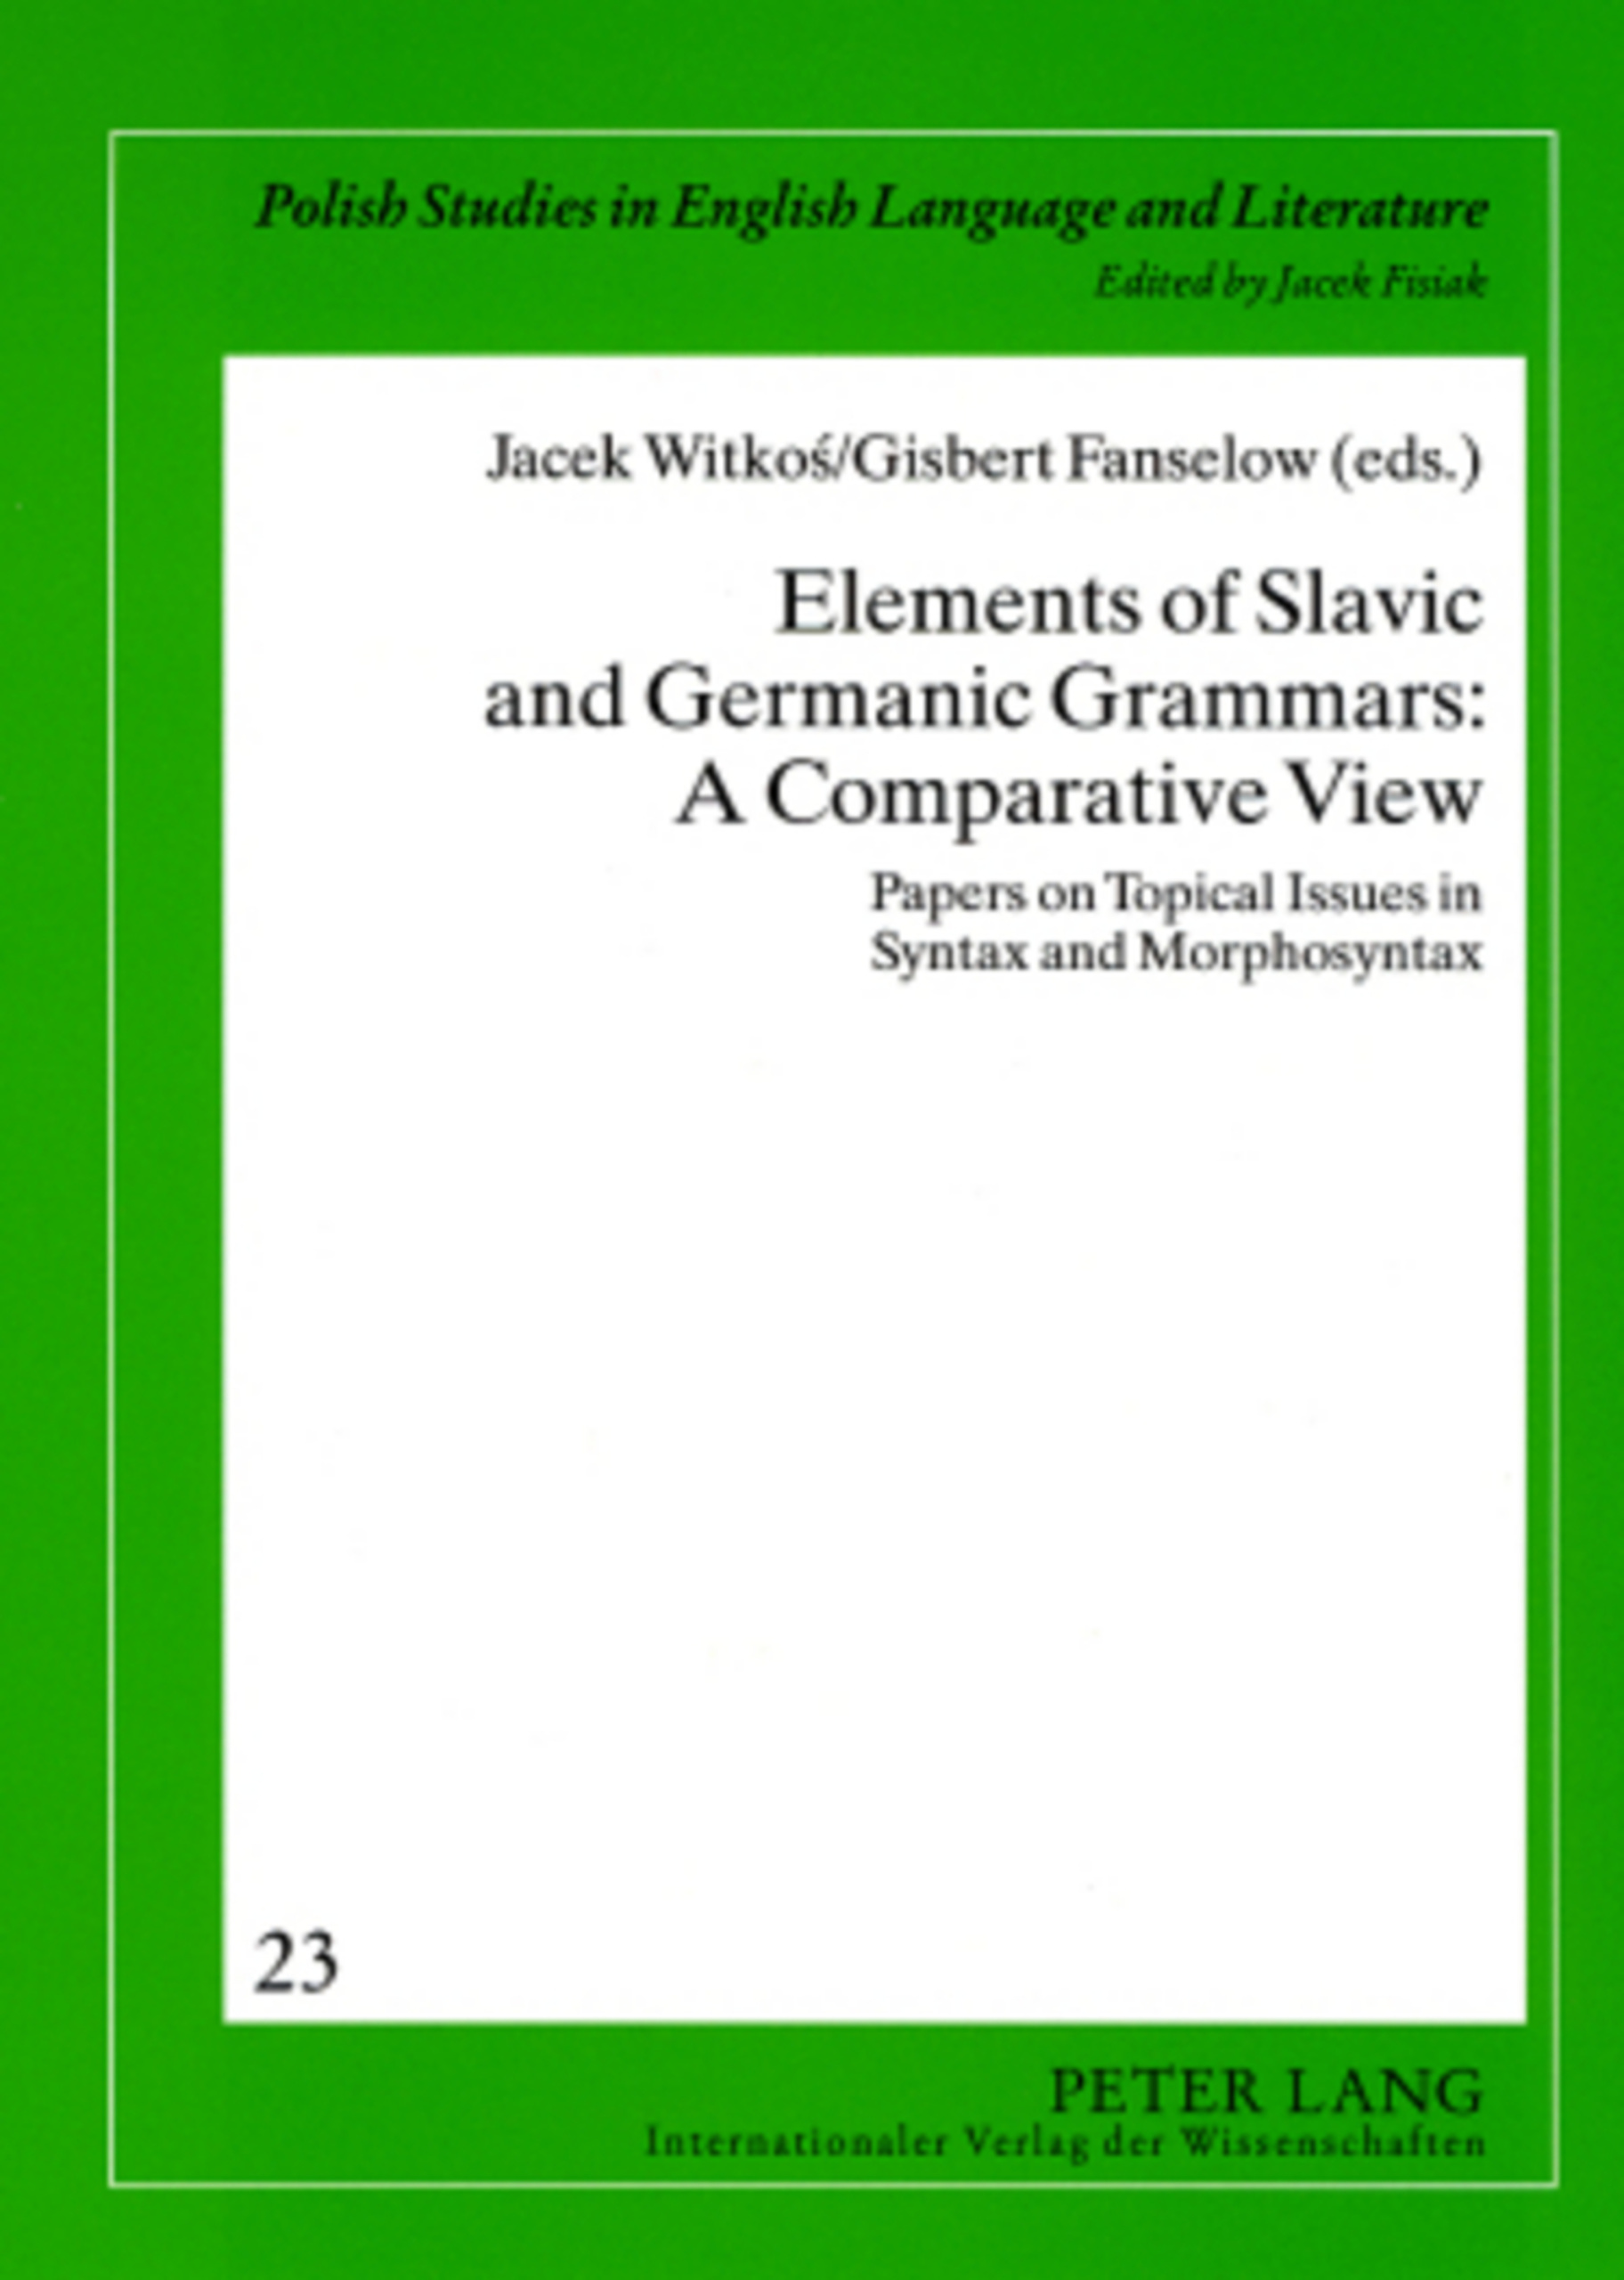 Title: Elements of Slavic and Germanic Grammars: A Comparative View